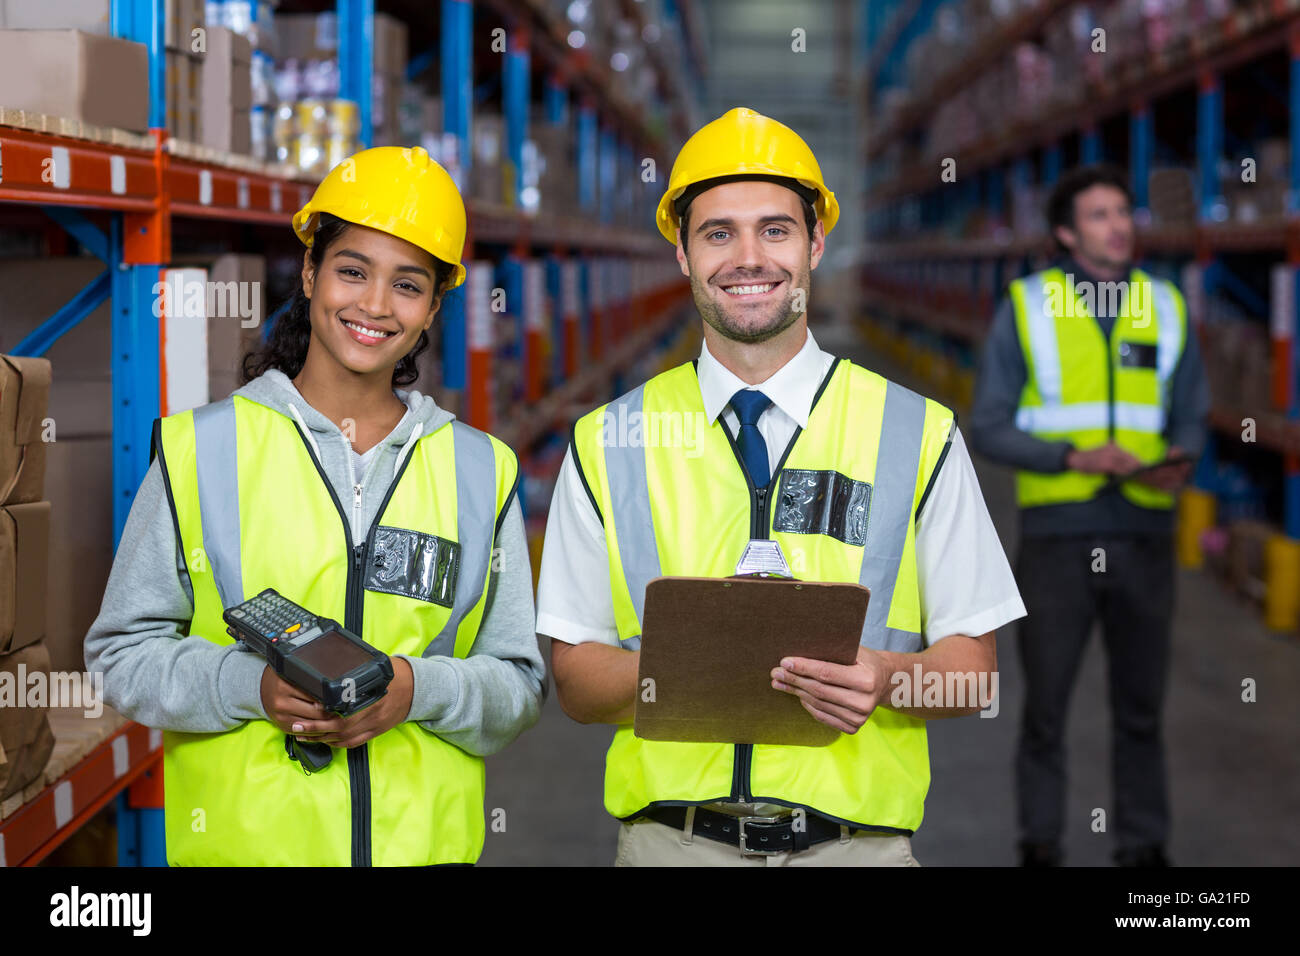 Smiling worker wearing yellow safety vest looking at camera - Stock Image